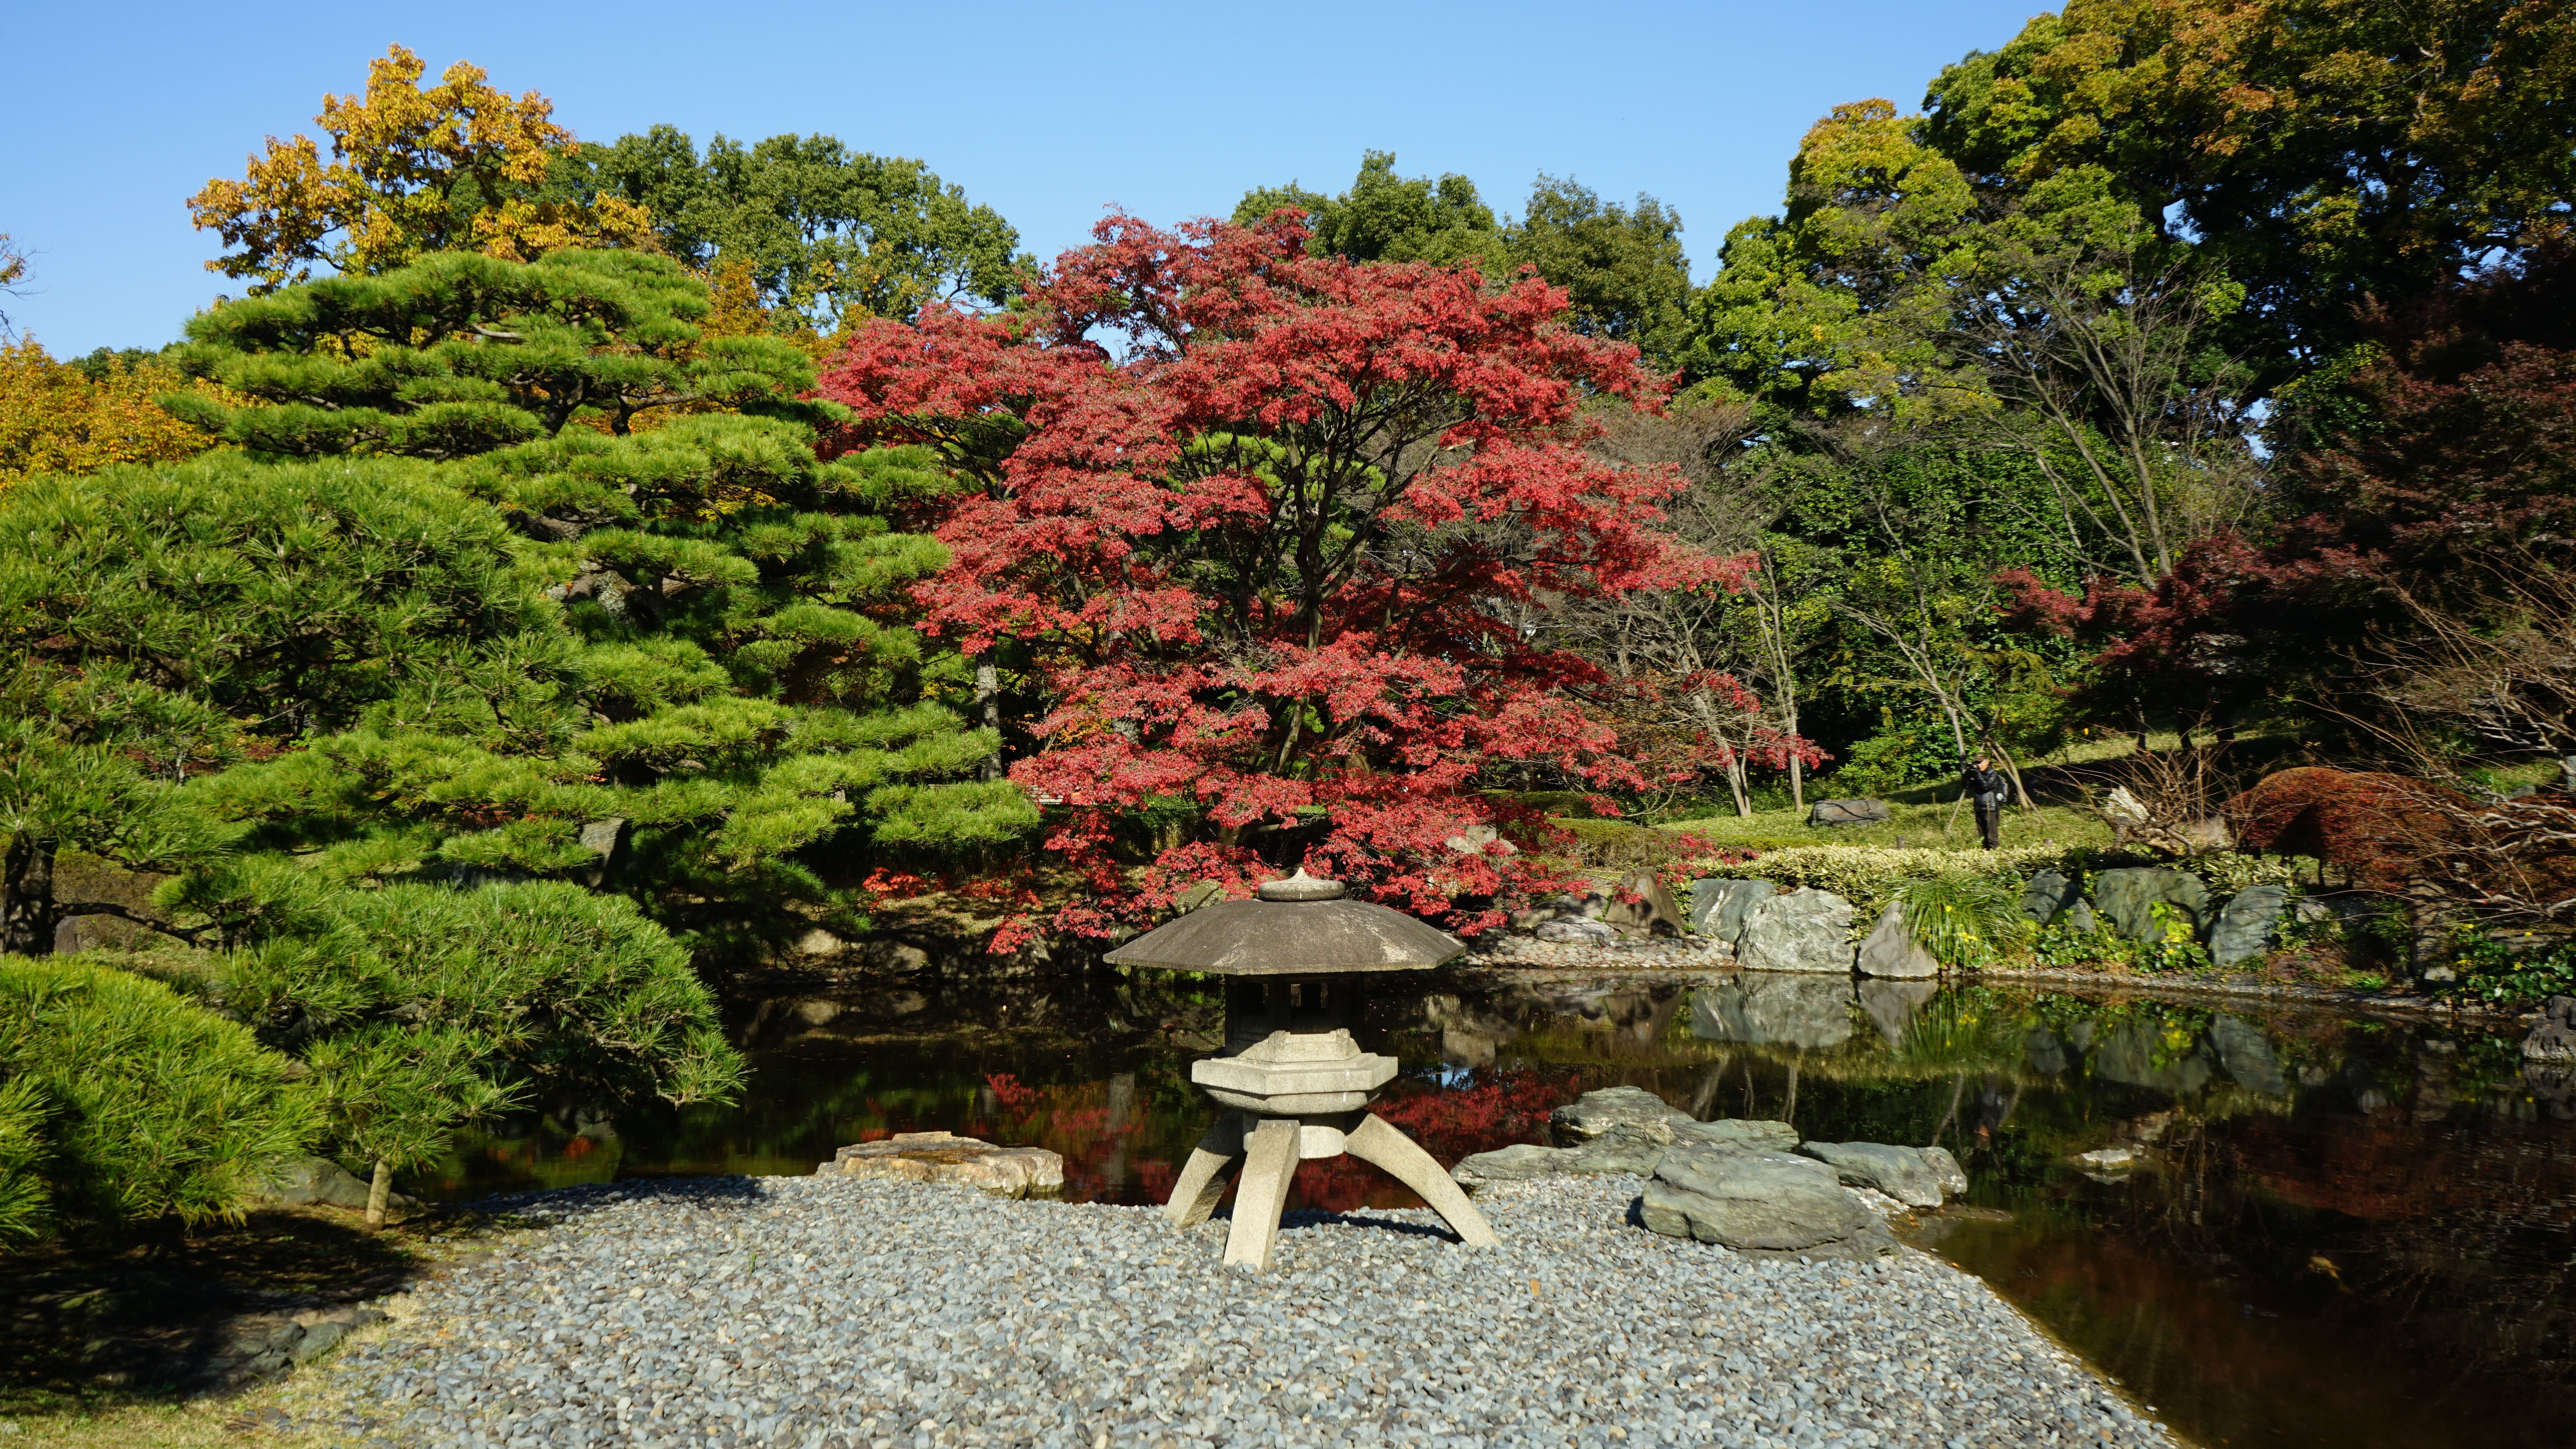 Autumn 2016 – Traveling around Asia and Japan